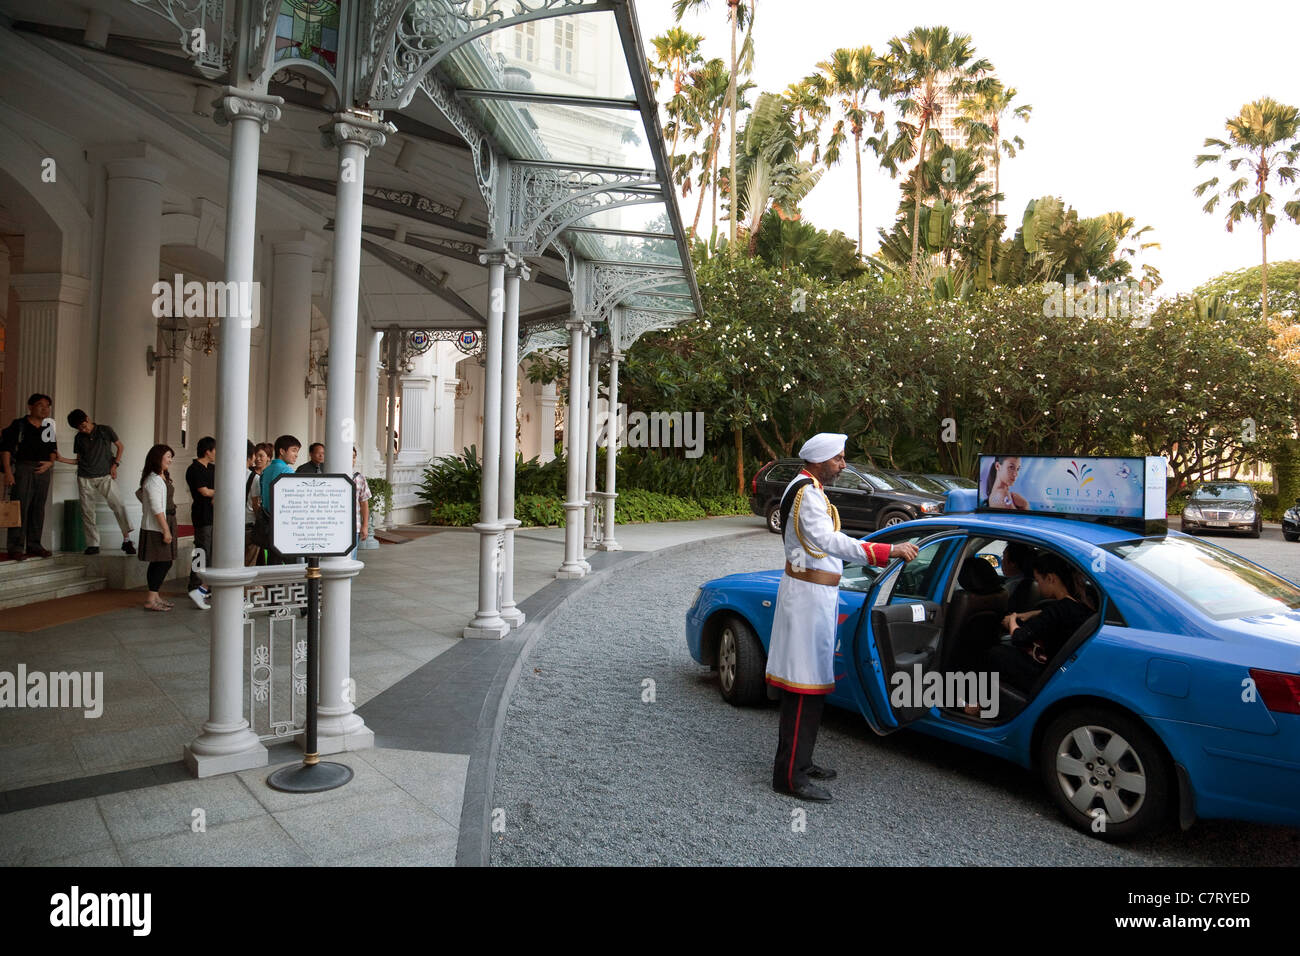 The Doorman opens the door to a taxi, Raffles Hotel, Singapore - Stock Image